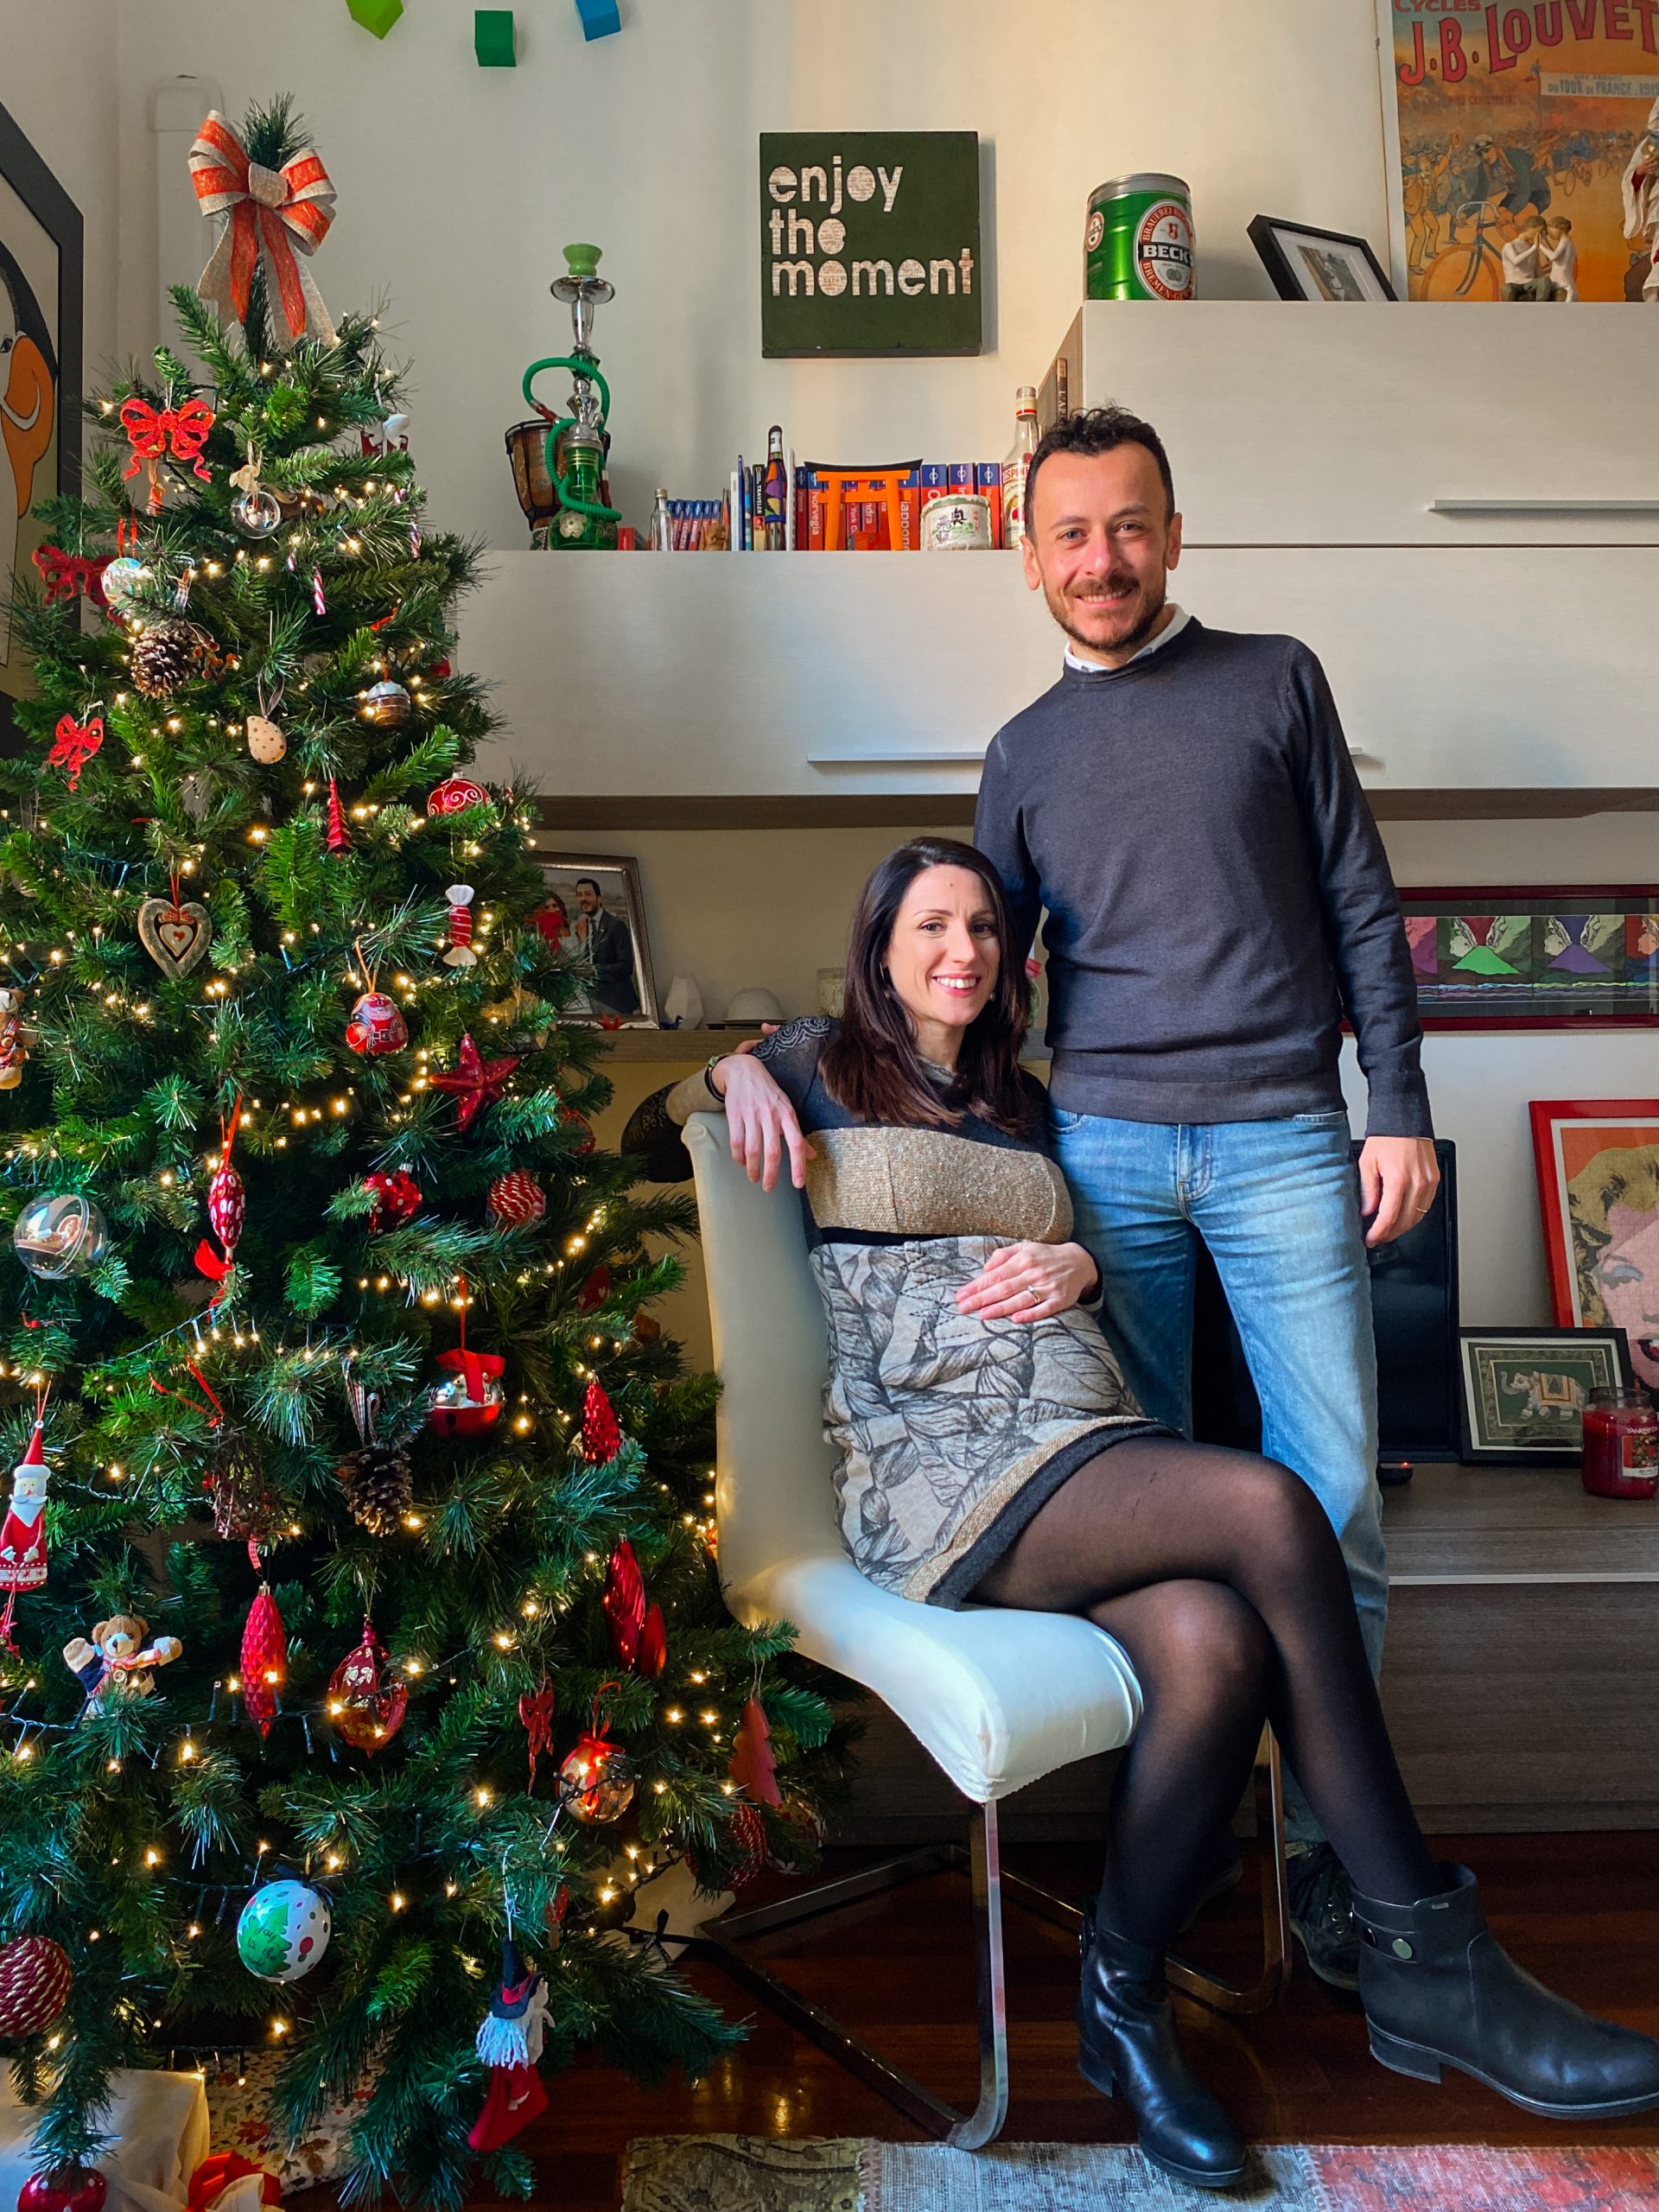 pregnant woman and her husband at the christmas tree